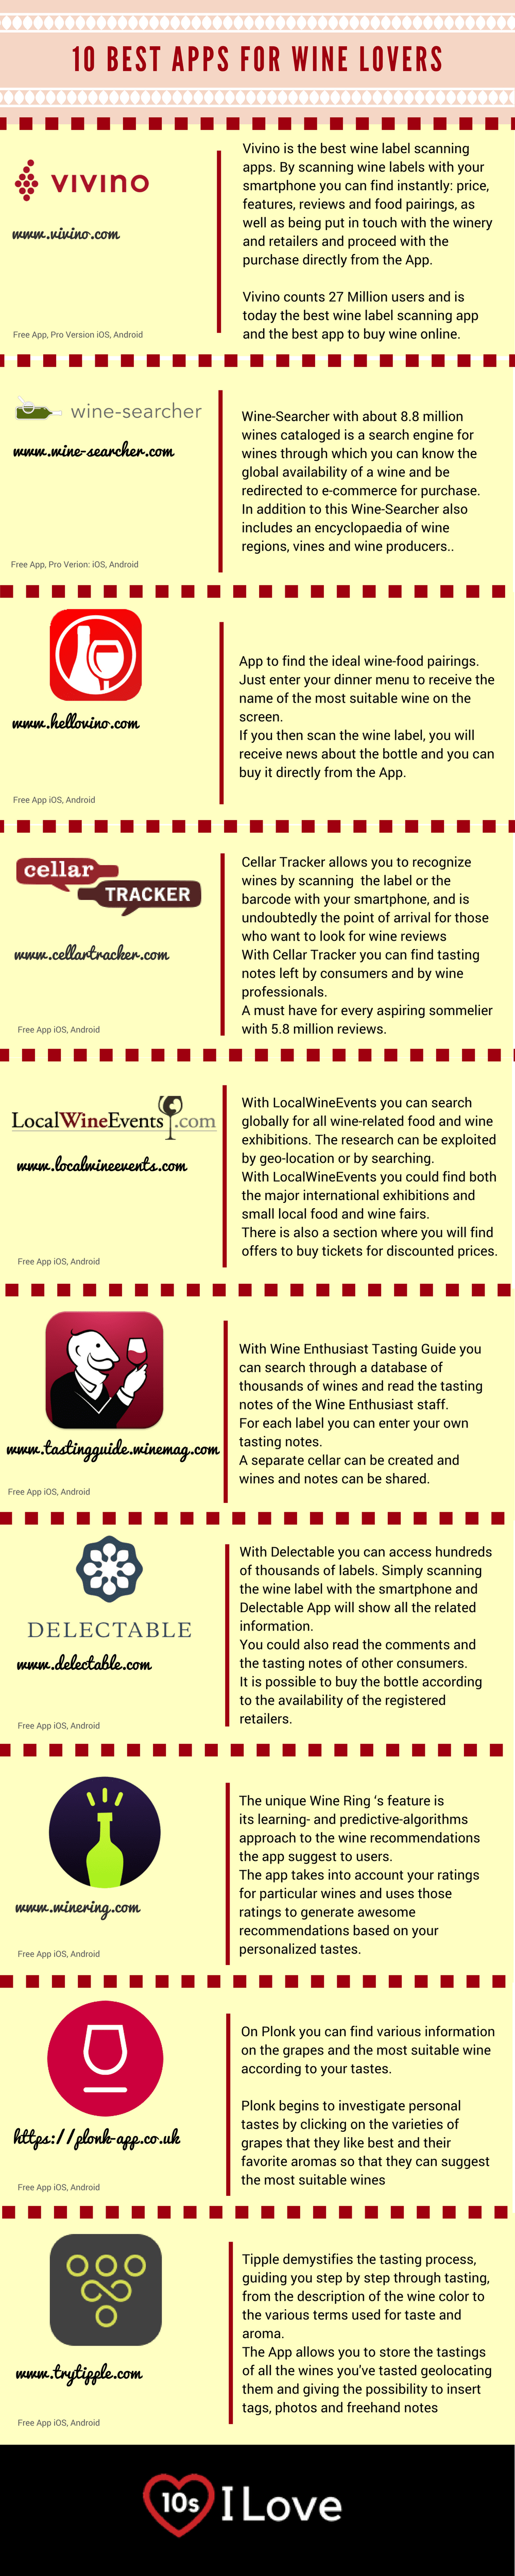 Best wine apps for wine lovers